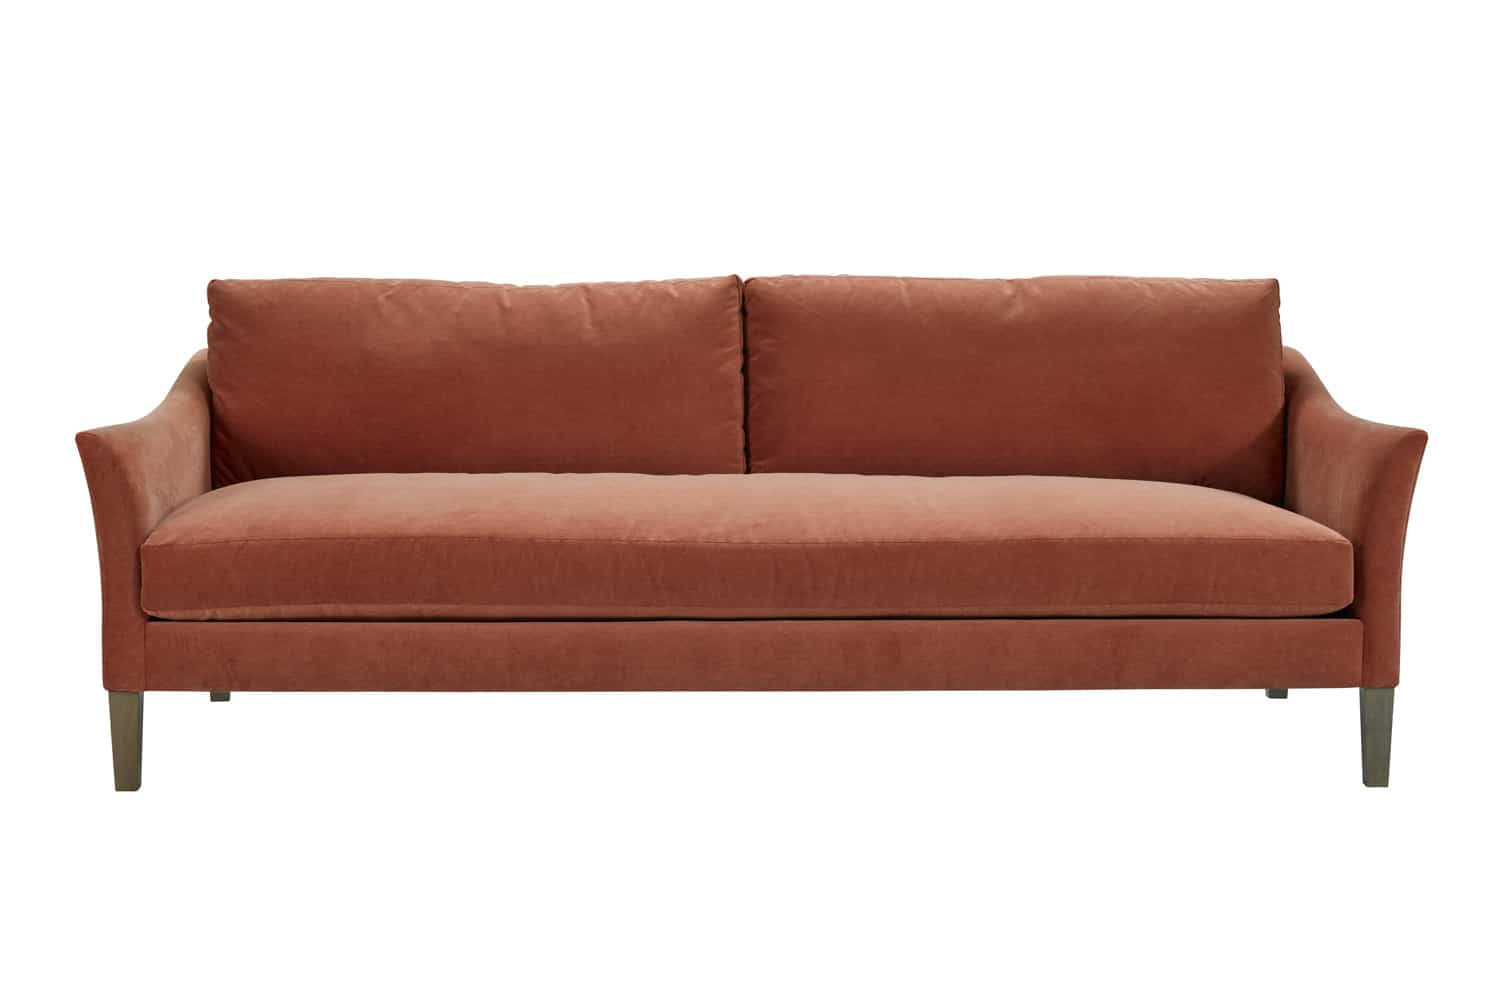 1to1 Flair Arm Sofa